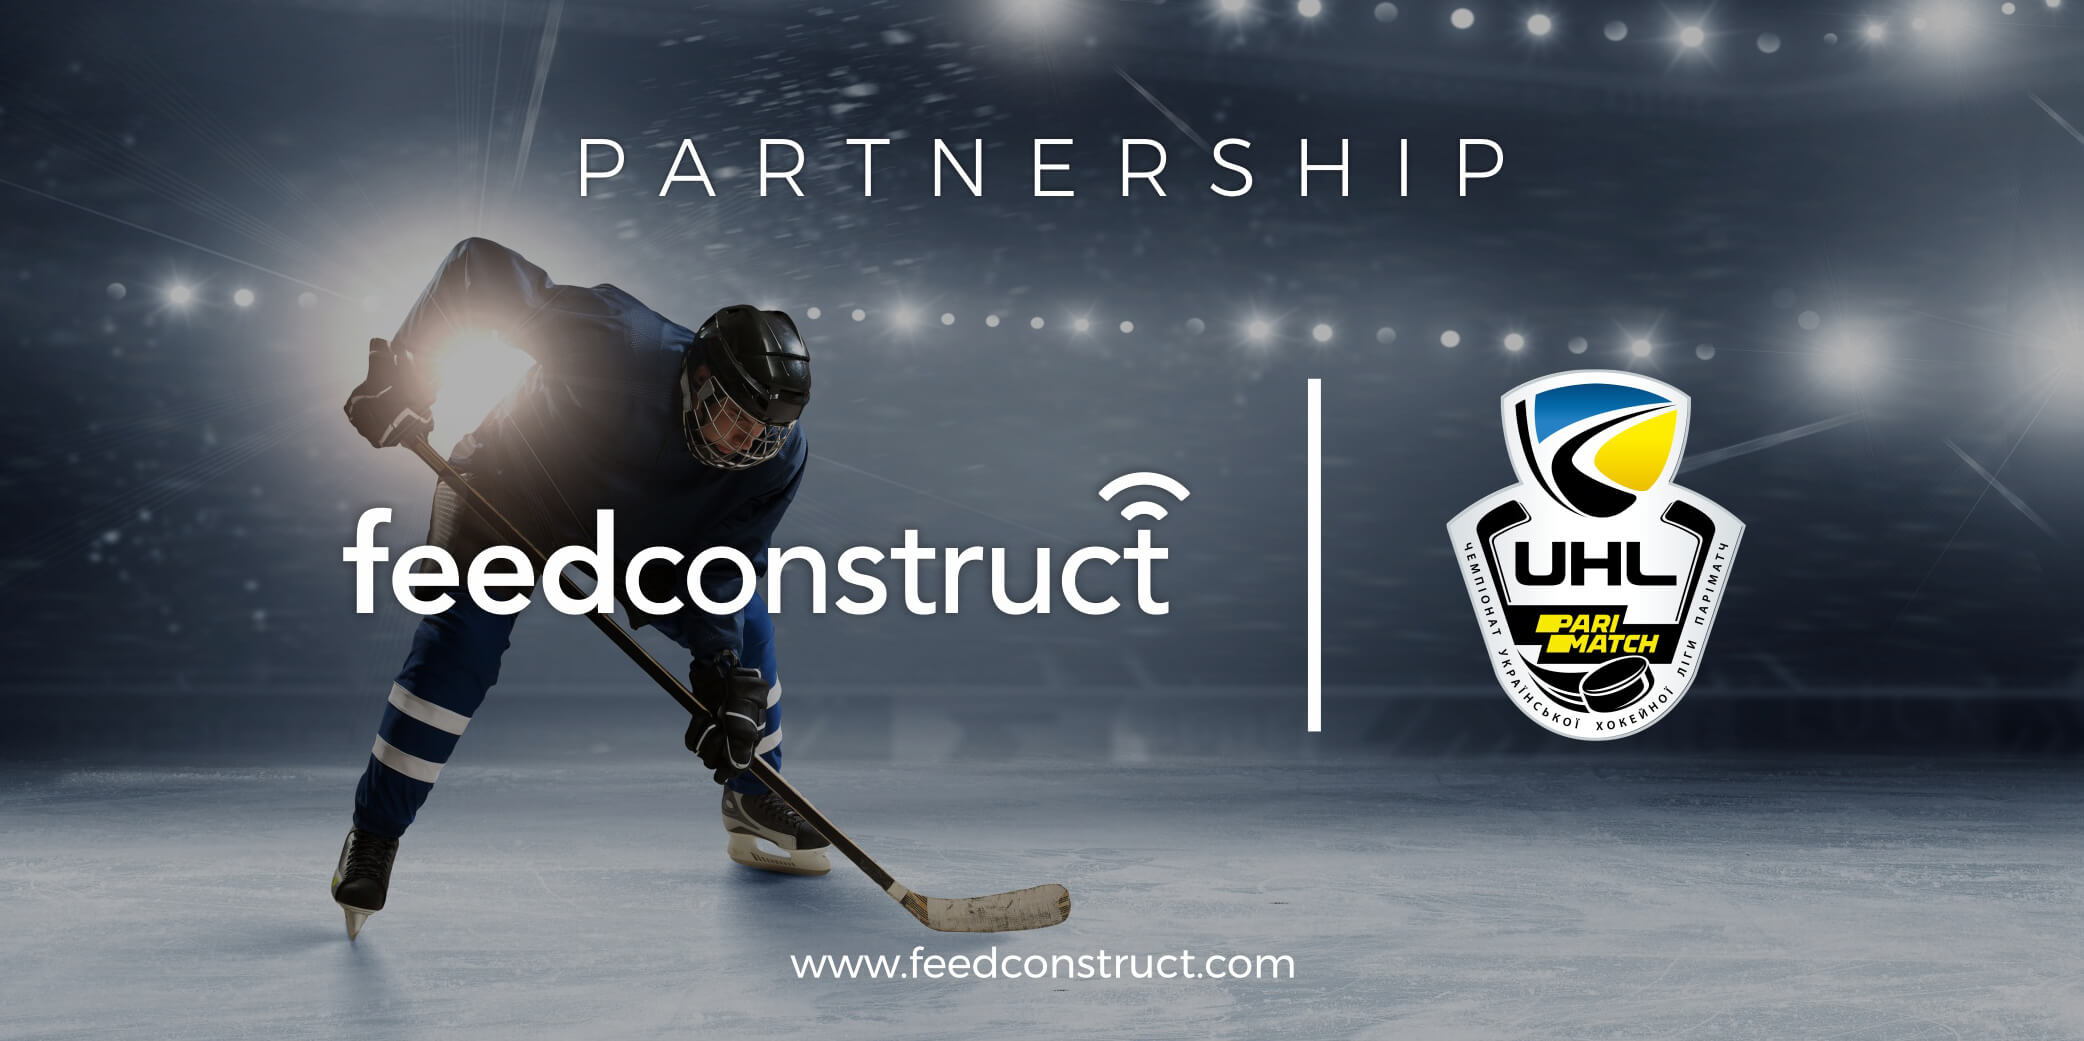 FeedConstruct signs exclusive deal with the Ukrainian Hockey League